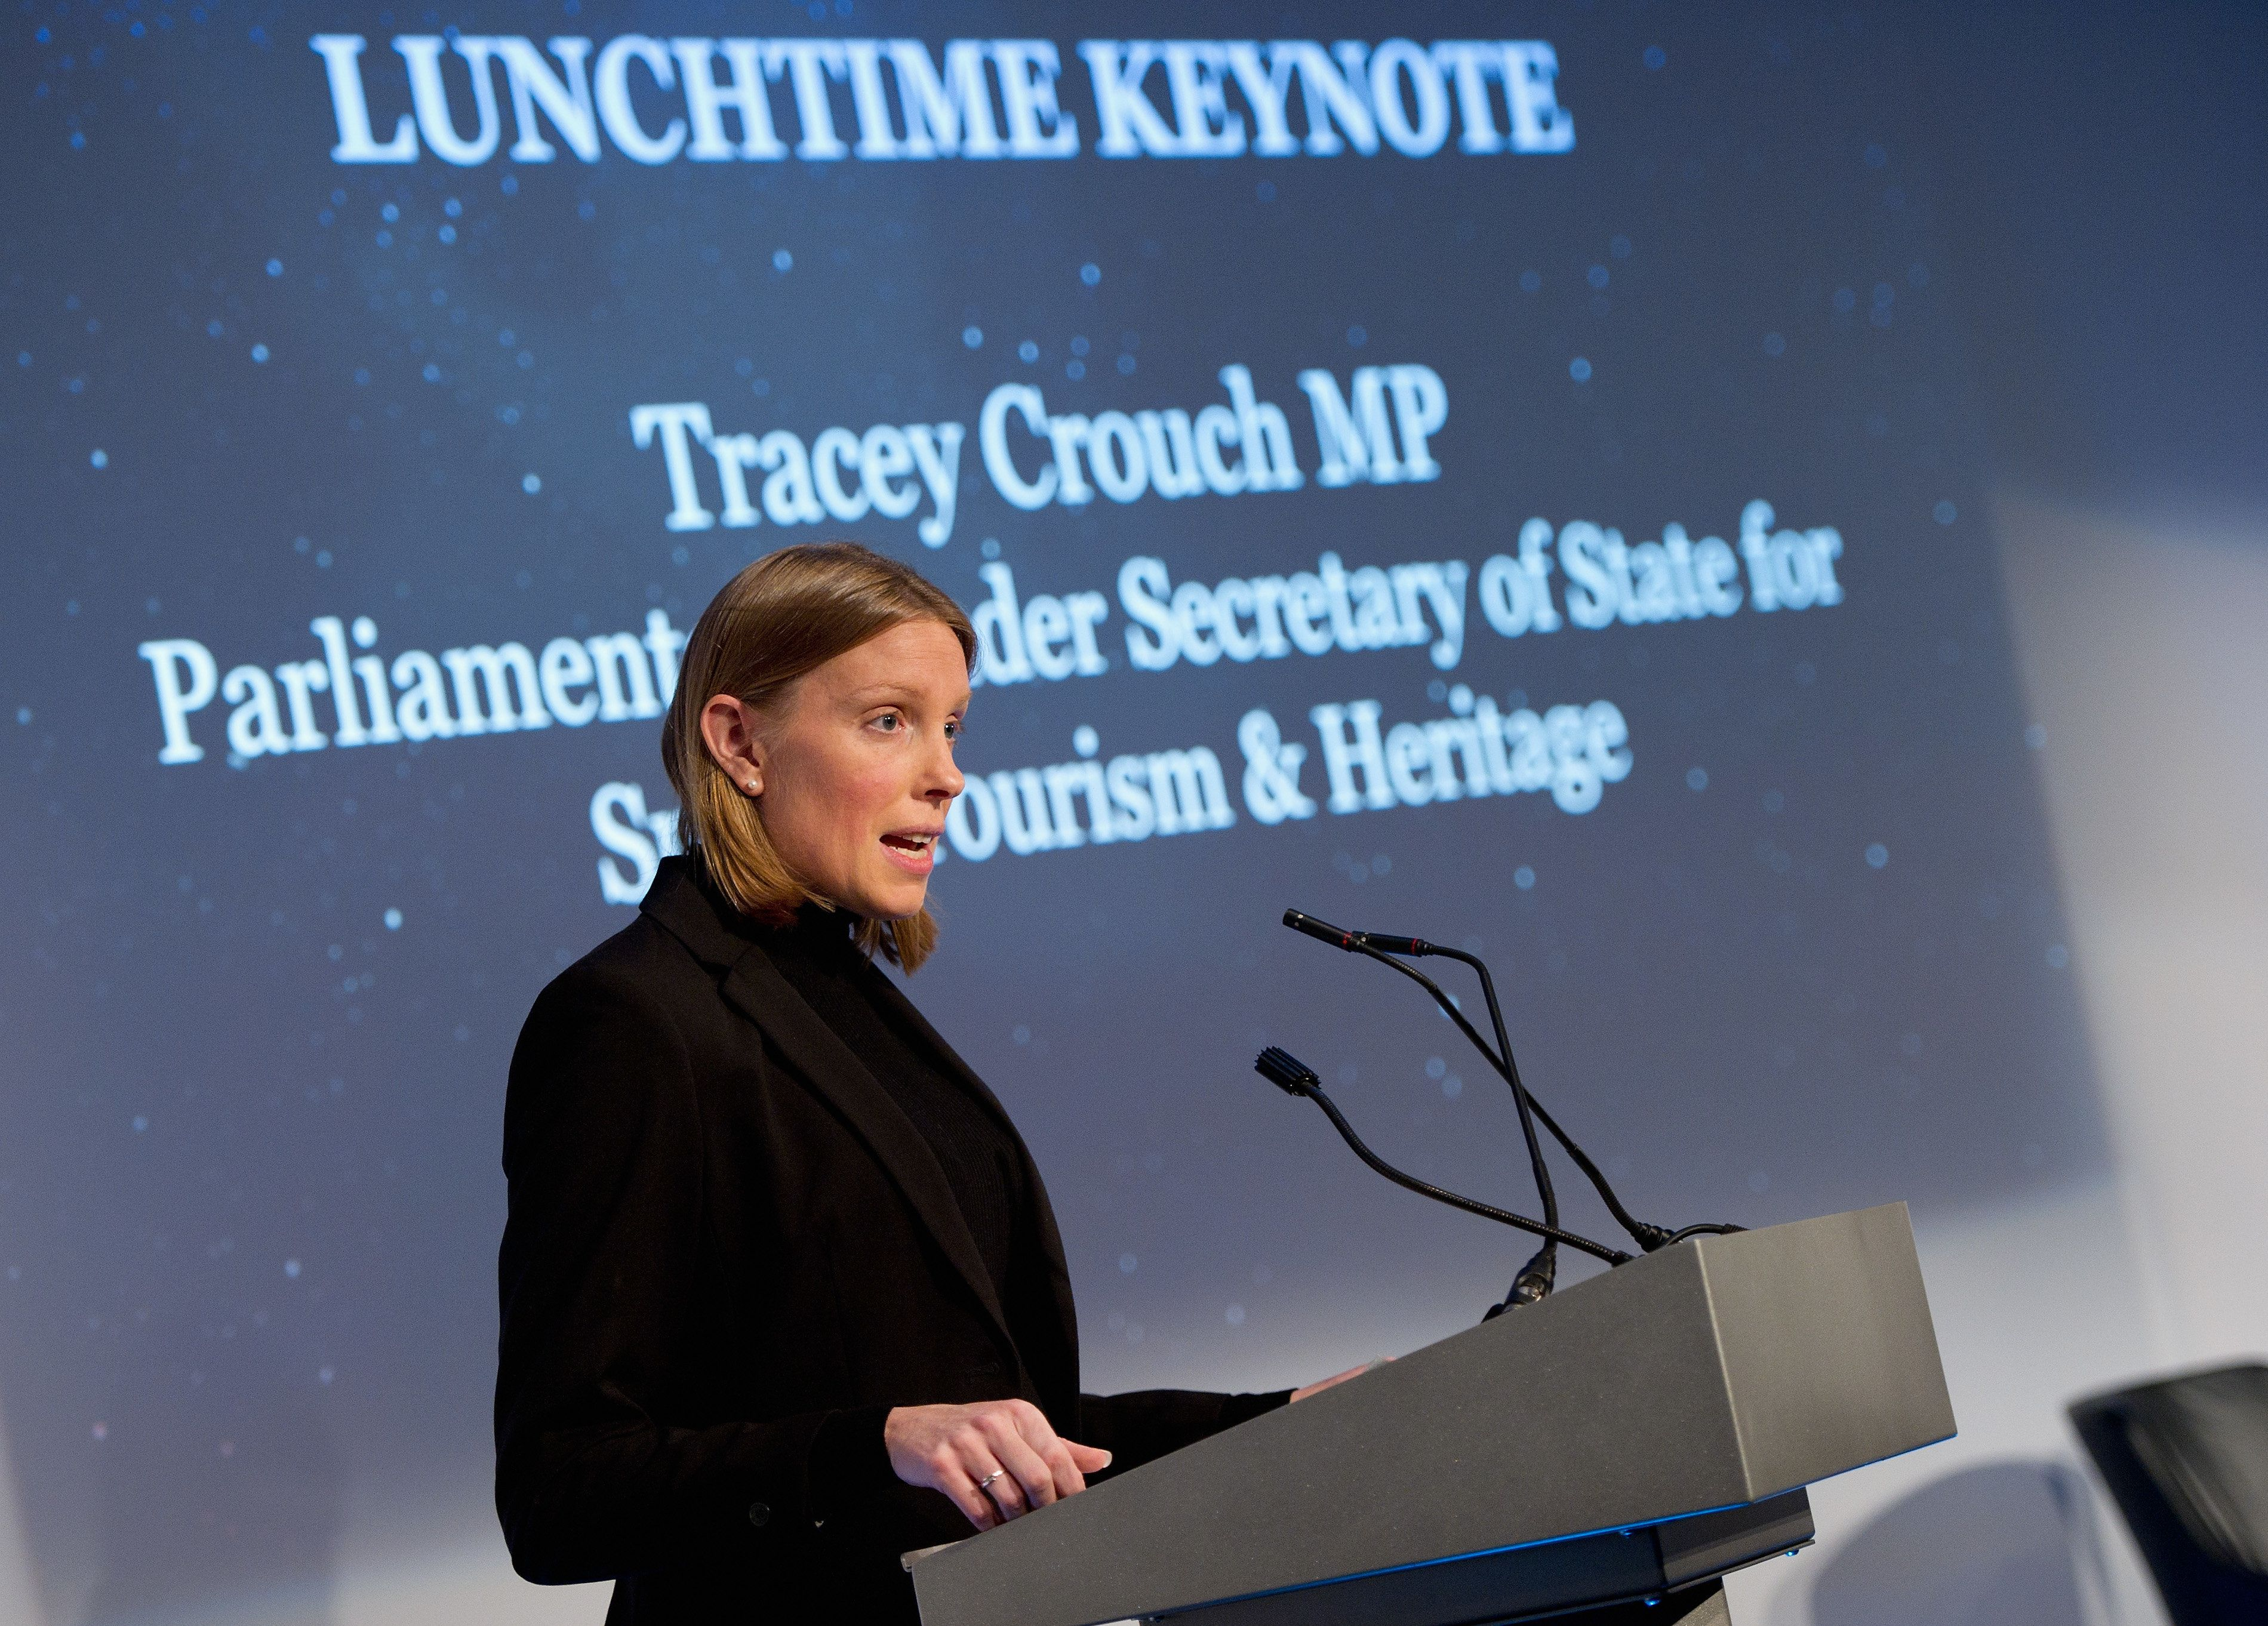 LONDON, ENGLAND - OCTOBER 19:  Tracey Crouch MP, Parliamentary Under Secretary of State for Sport, Tourism and Heritage at the Beyond Sport Summit on October 19, 2015 in London, England.  (Photo by Eamonn M. McCormack/Getty Images for Beyond Sport)